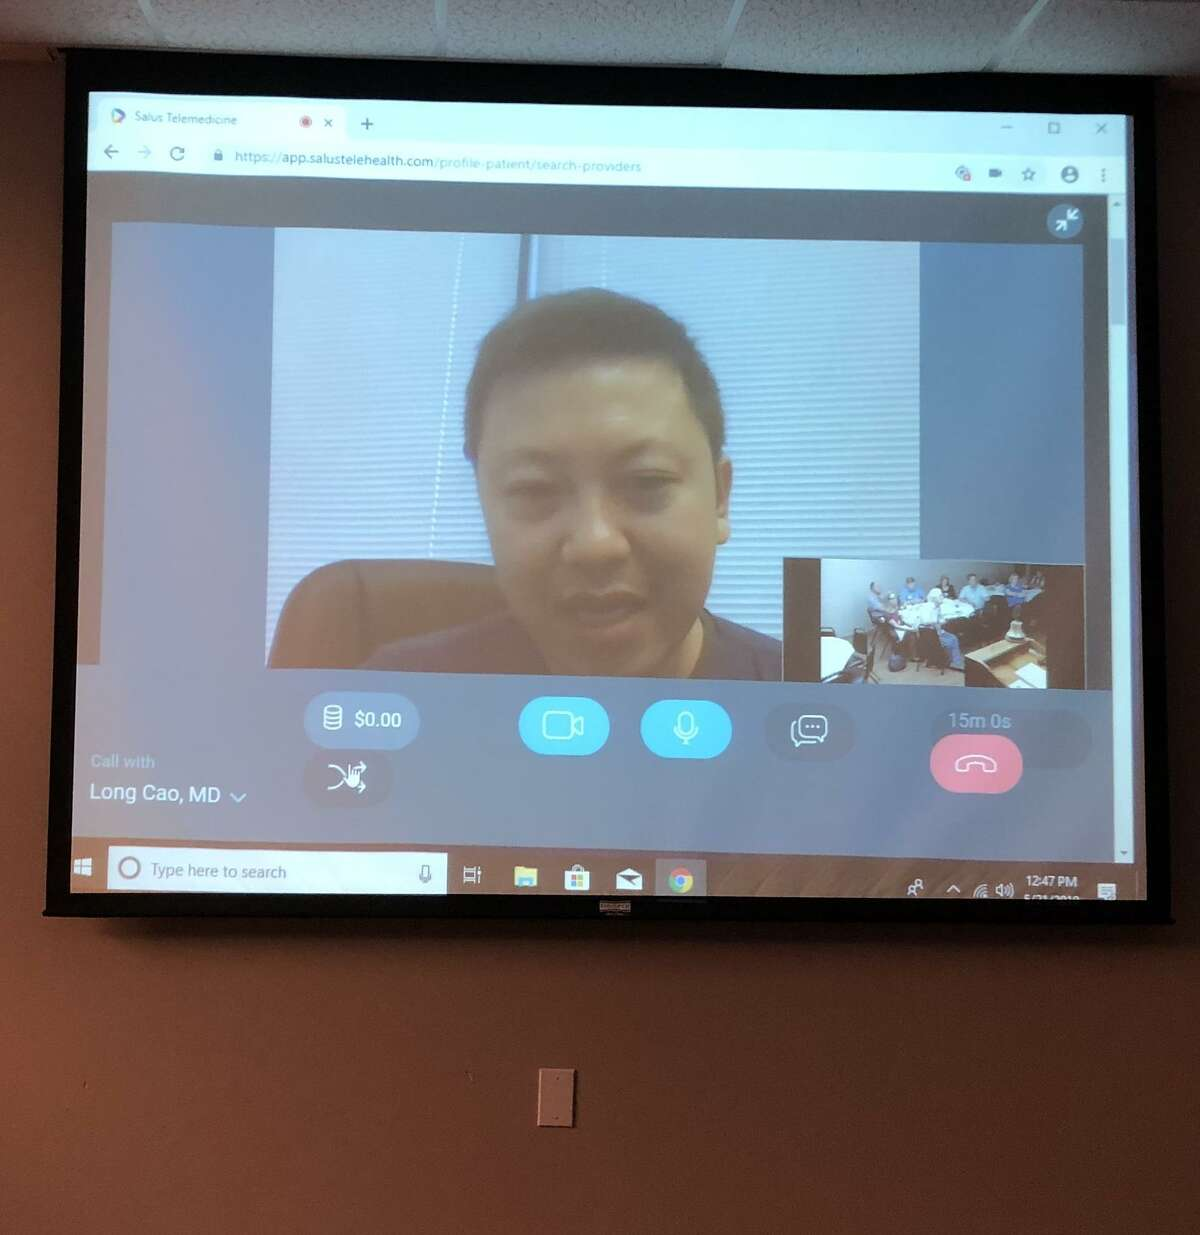 OakBend Medical Group's Dr. Long Cao, a preventative cardiologist, is one of the group's doctors now able to see patients via telemedicine. The doctors can then determine if patients need to be admitted to the hospital or if there is another plan of action that should be taken.